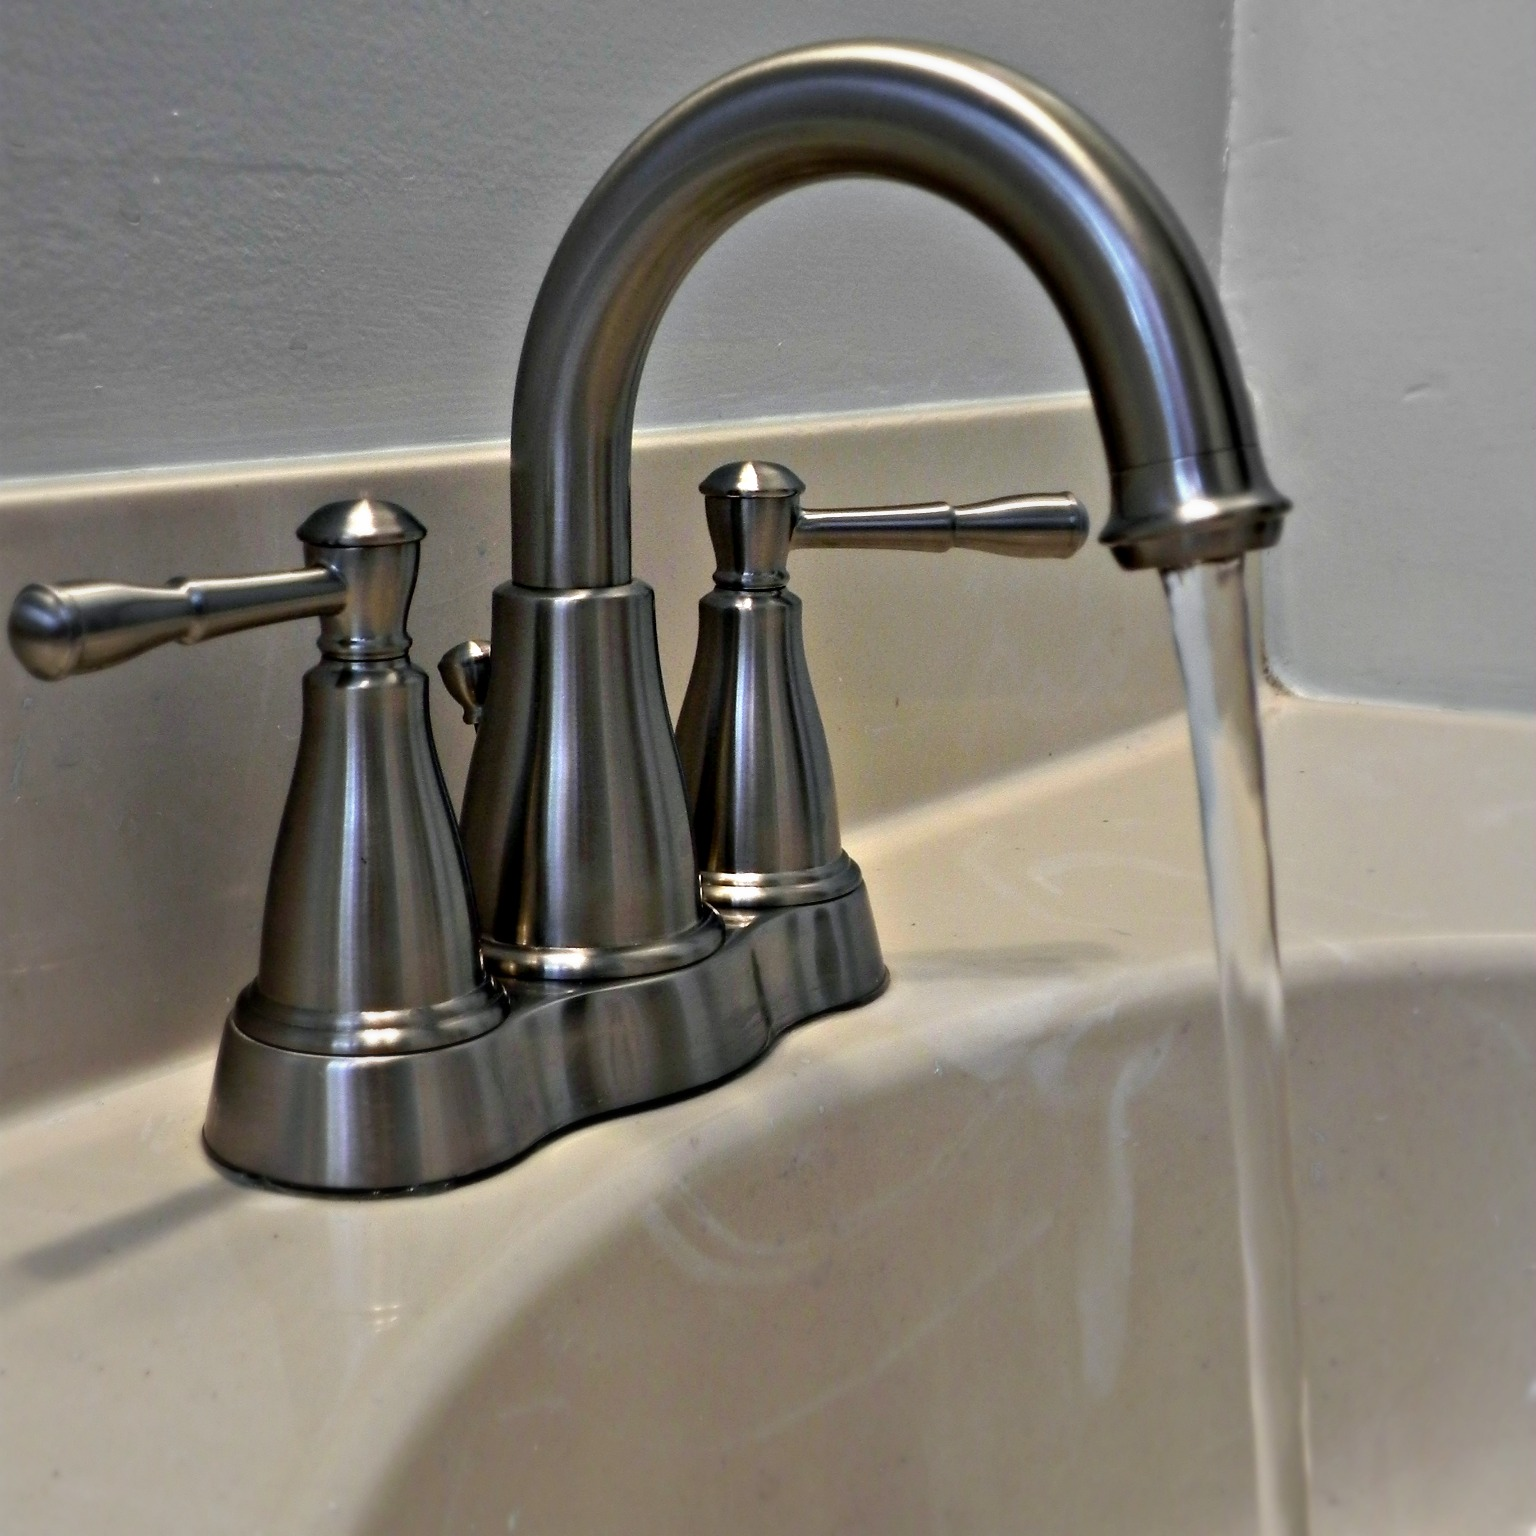 Bath Spigot : Danze Eastham Bathroom Faucet Review - Mad in Crafts